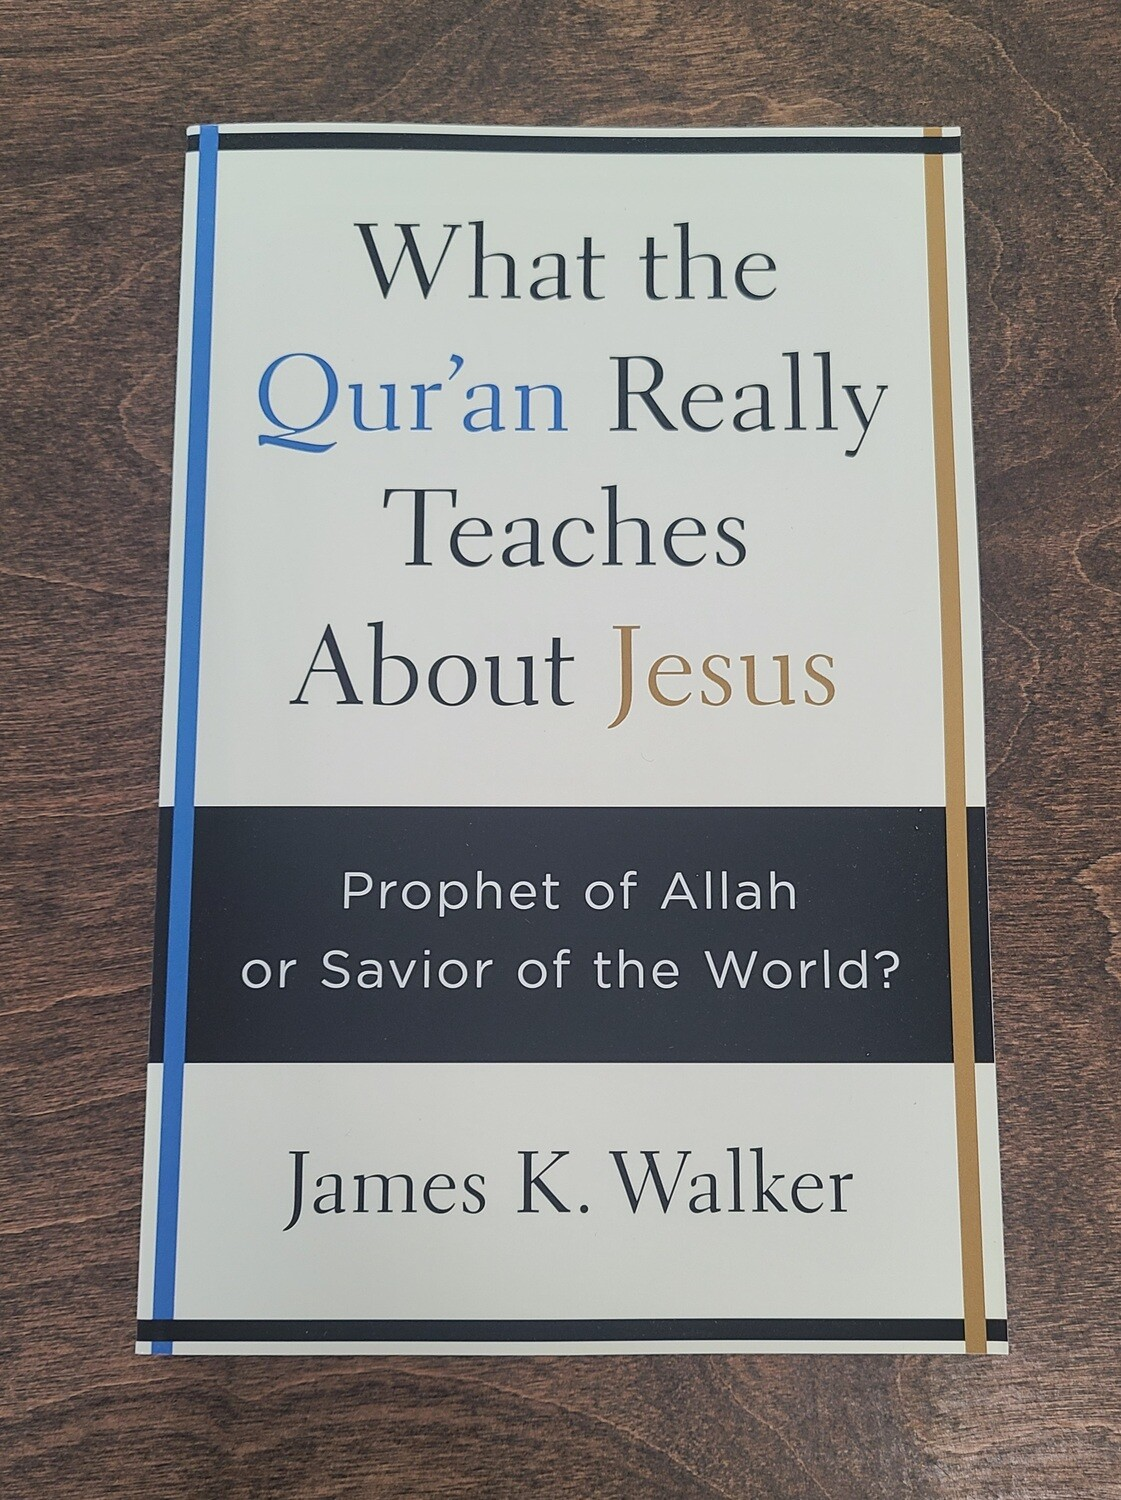 What the Qur'an Really Teaches About Jesus: Prophet of Allah or Savior of the World? by James K. Walker